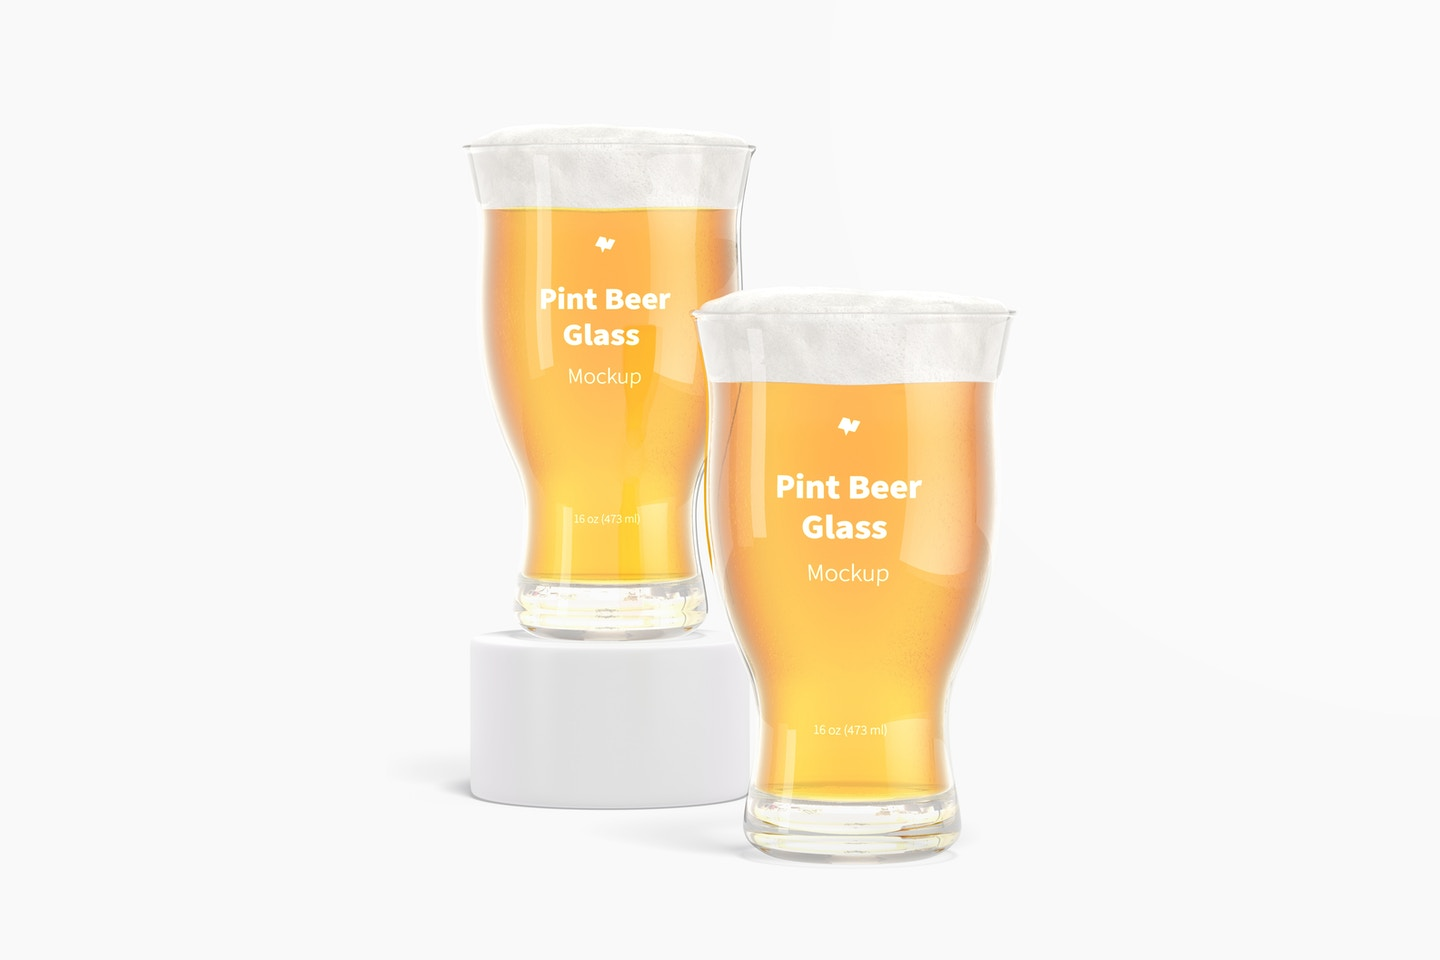 16 oz Pints Beer Glass Mockup, Front View